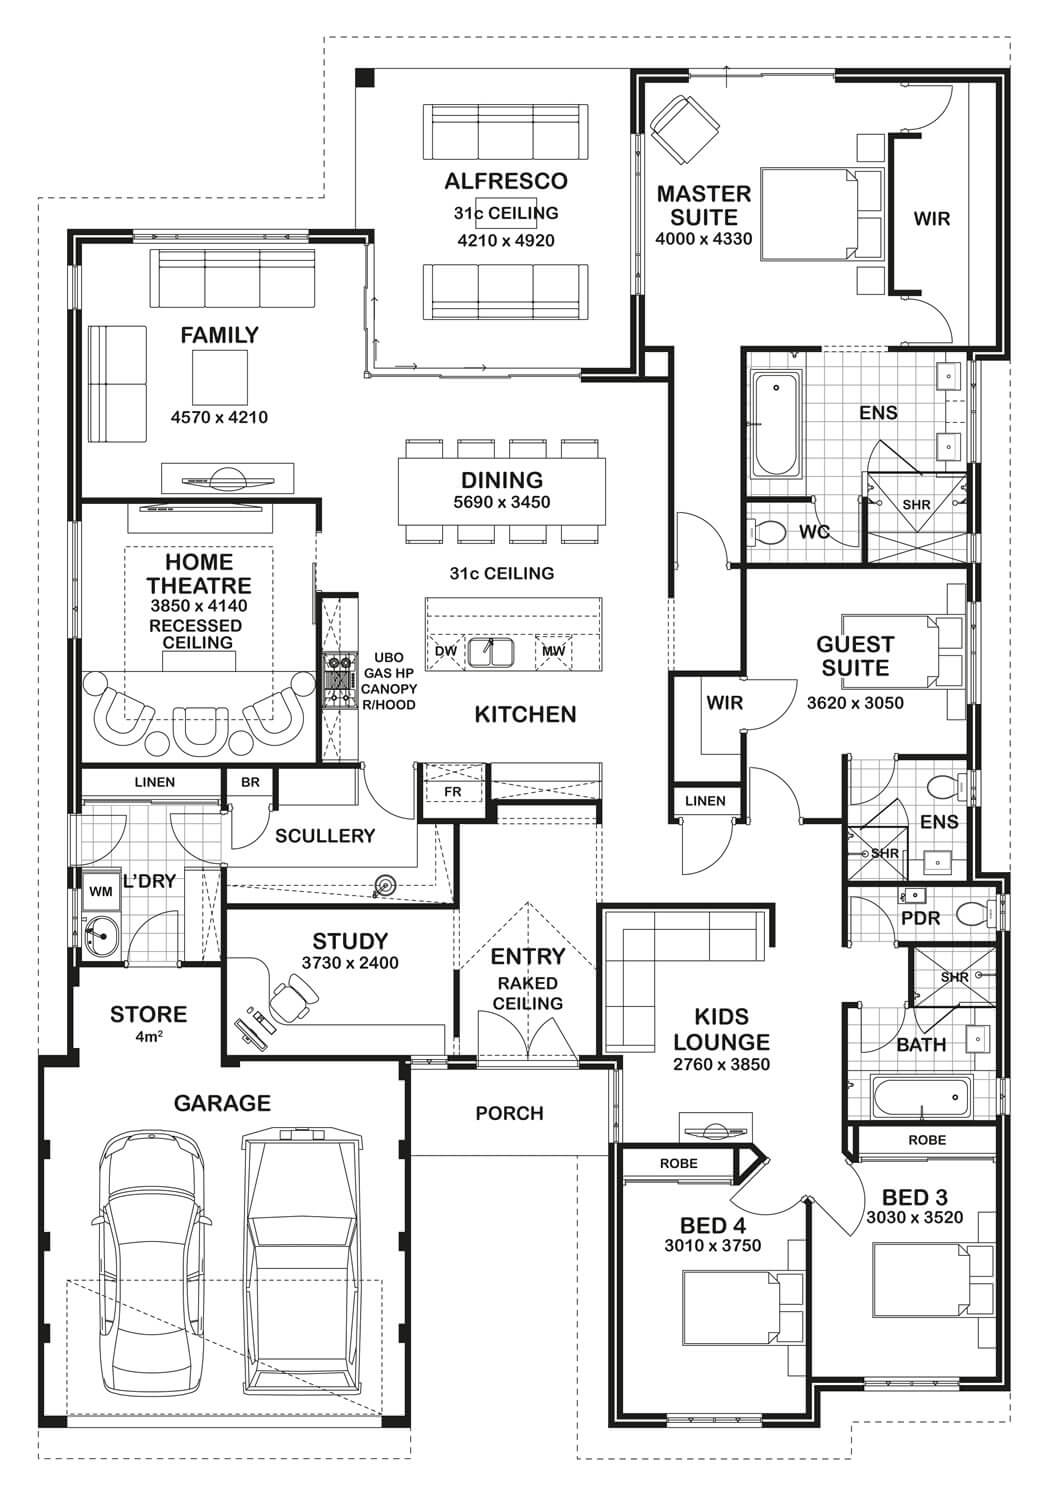 Floor plans furthermore Hiring An Architect To Draw The Extension Plans in addition Four Seasons Toronto Condos besides 73 Single Axle Trailer Parts Kit 3 500lbs Gvwr additionally Stock Illustration Factory Industrial Building Icons Power Plant Energy Construction Refinery Nuclear Vector Illustration Image56098876. on utility building plans